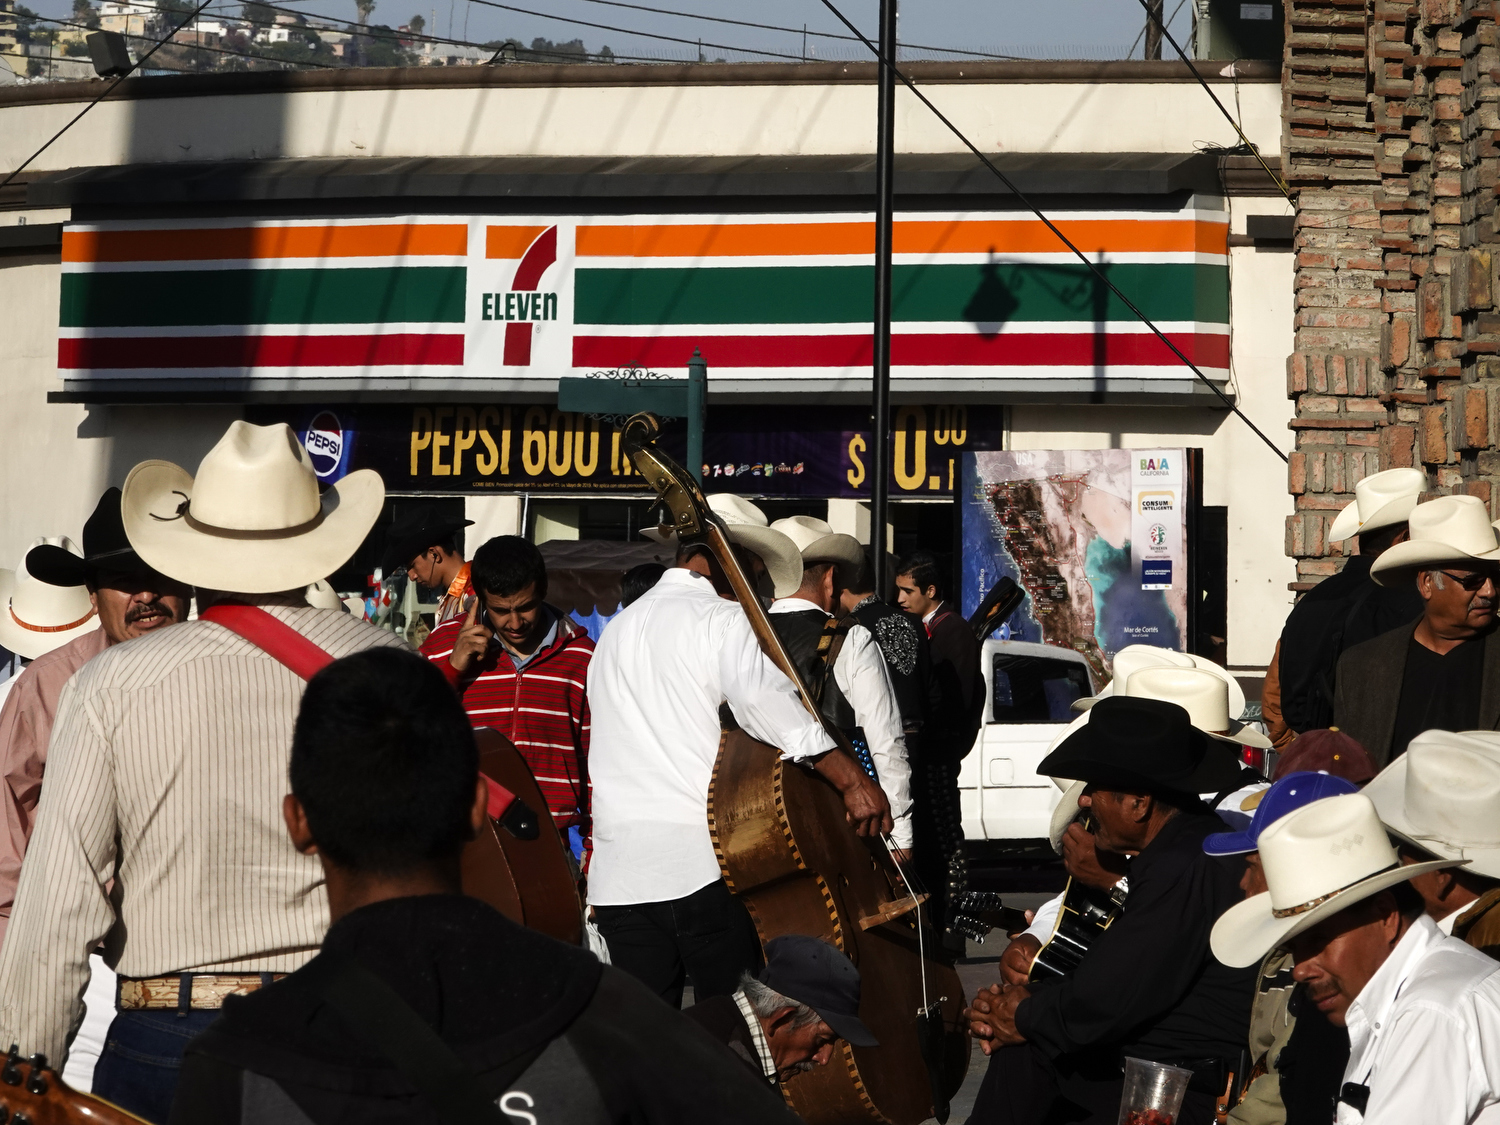 2019. Tijuana. Mexico.  Scenes from Tijuana by the PedWest crossing point, a main pedestrian border crossing between Mexico-USA.